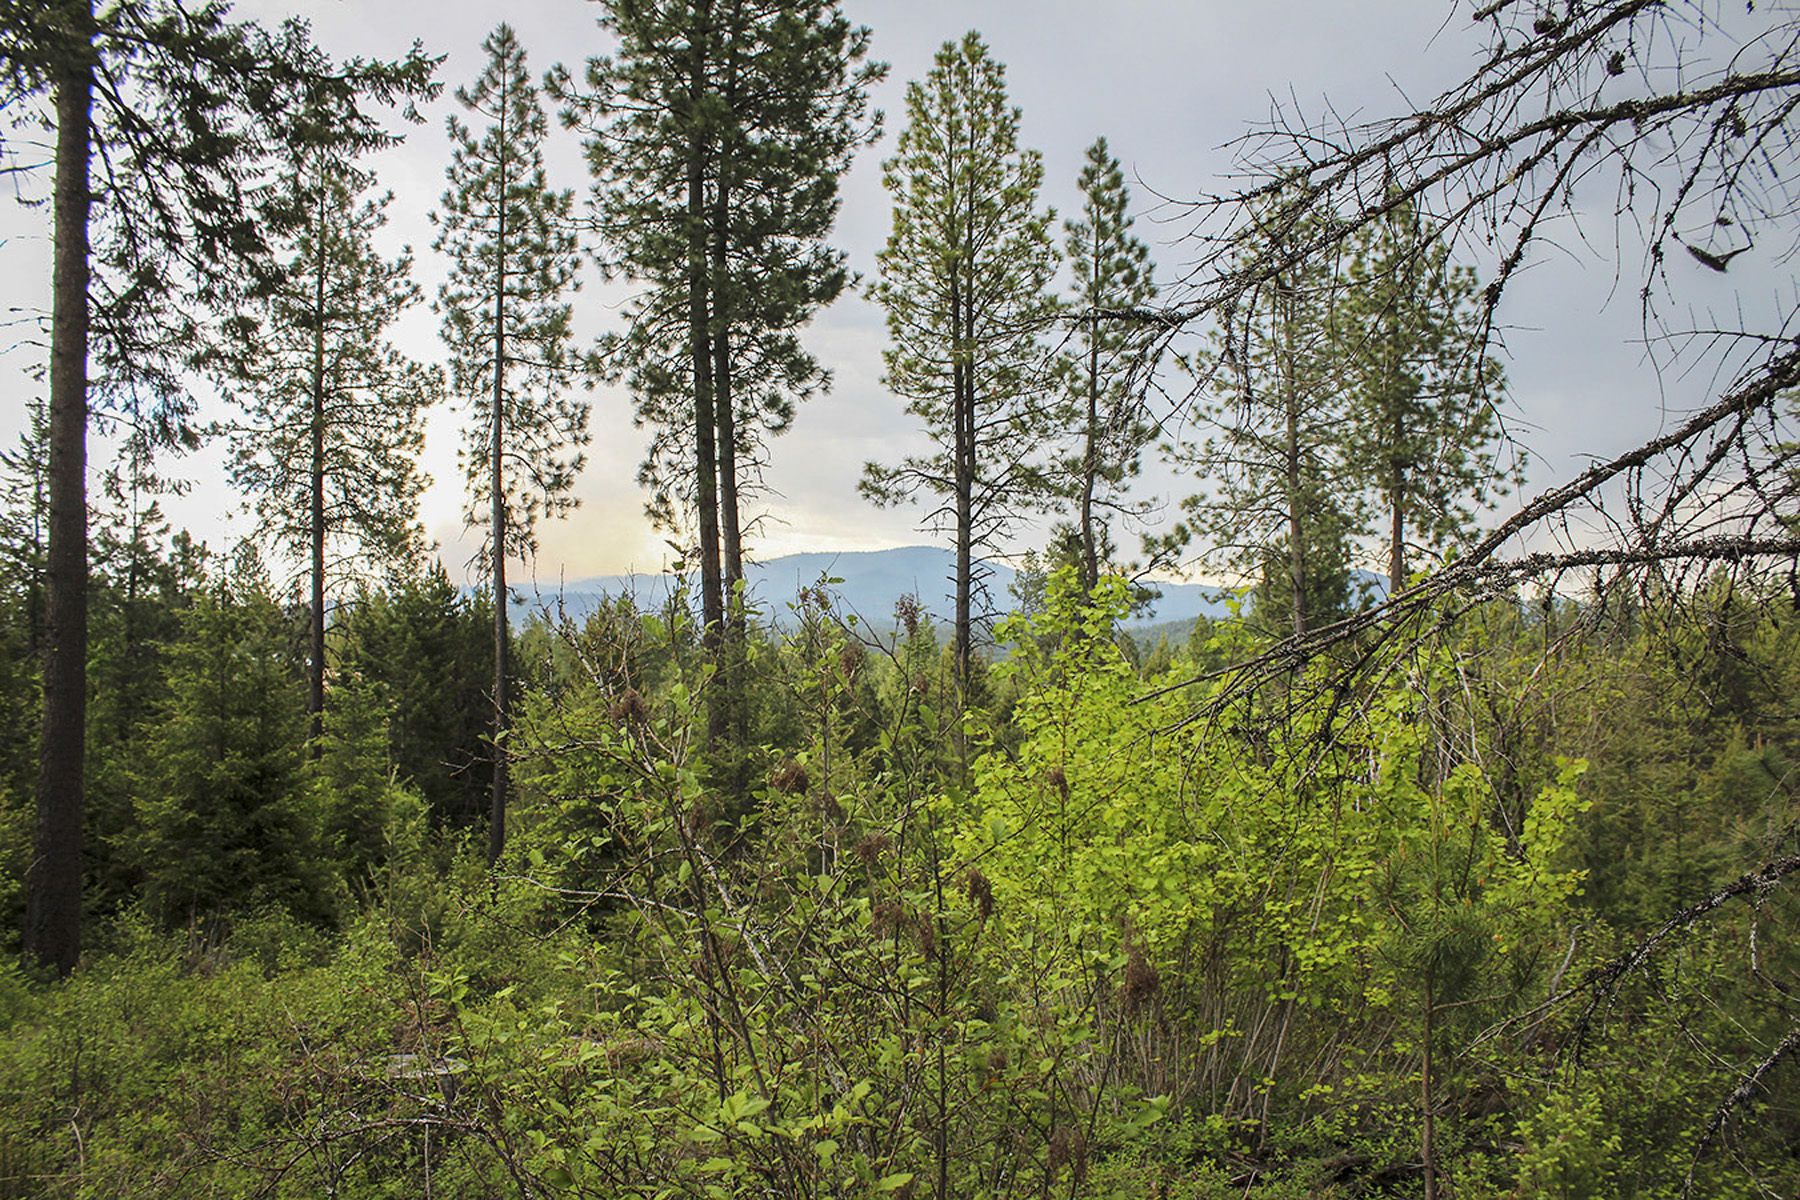 Terreno para Venda às Treed home site with end of the road privacy Everett Huff Lot 1 Oldtown, Idaho, 83822 Estados Unidos